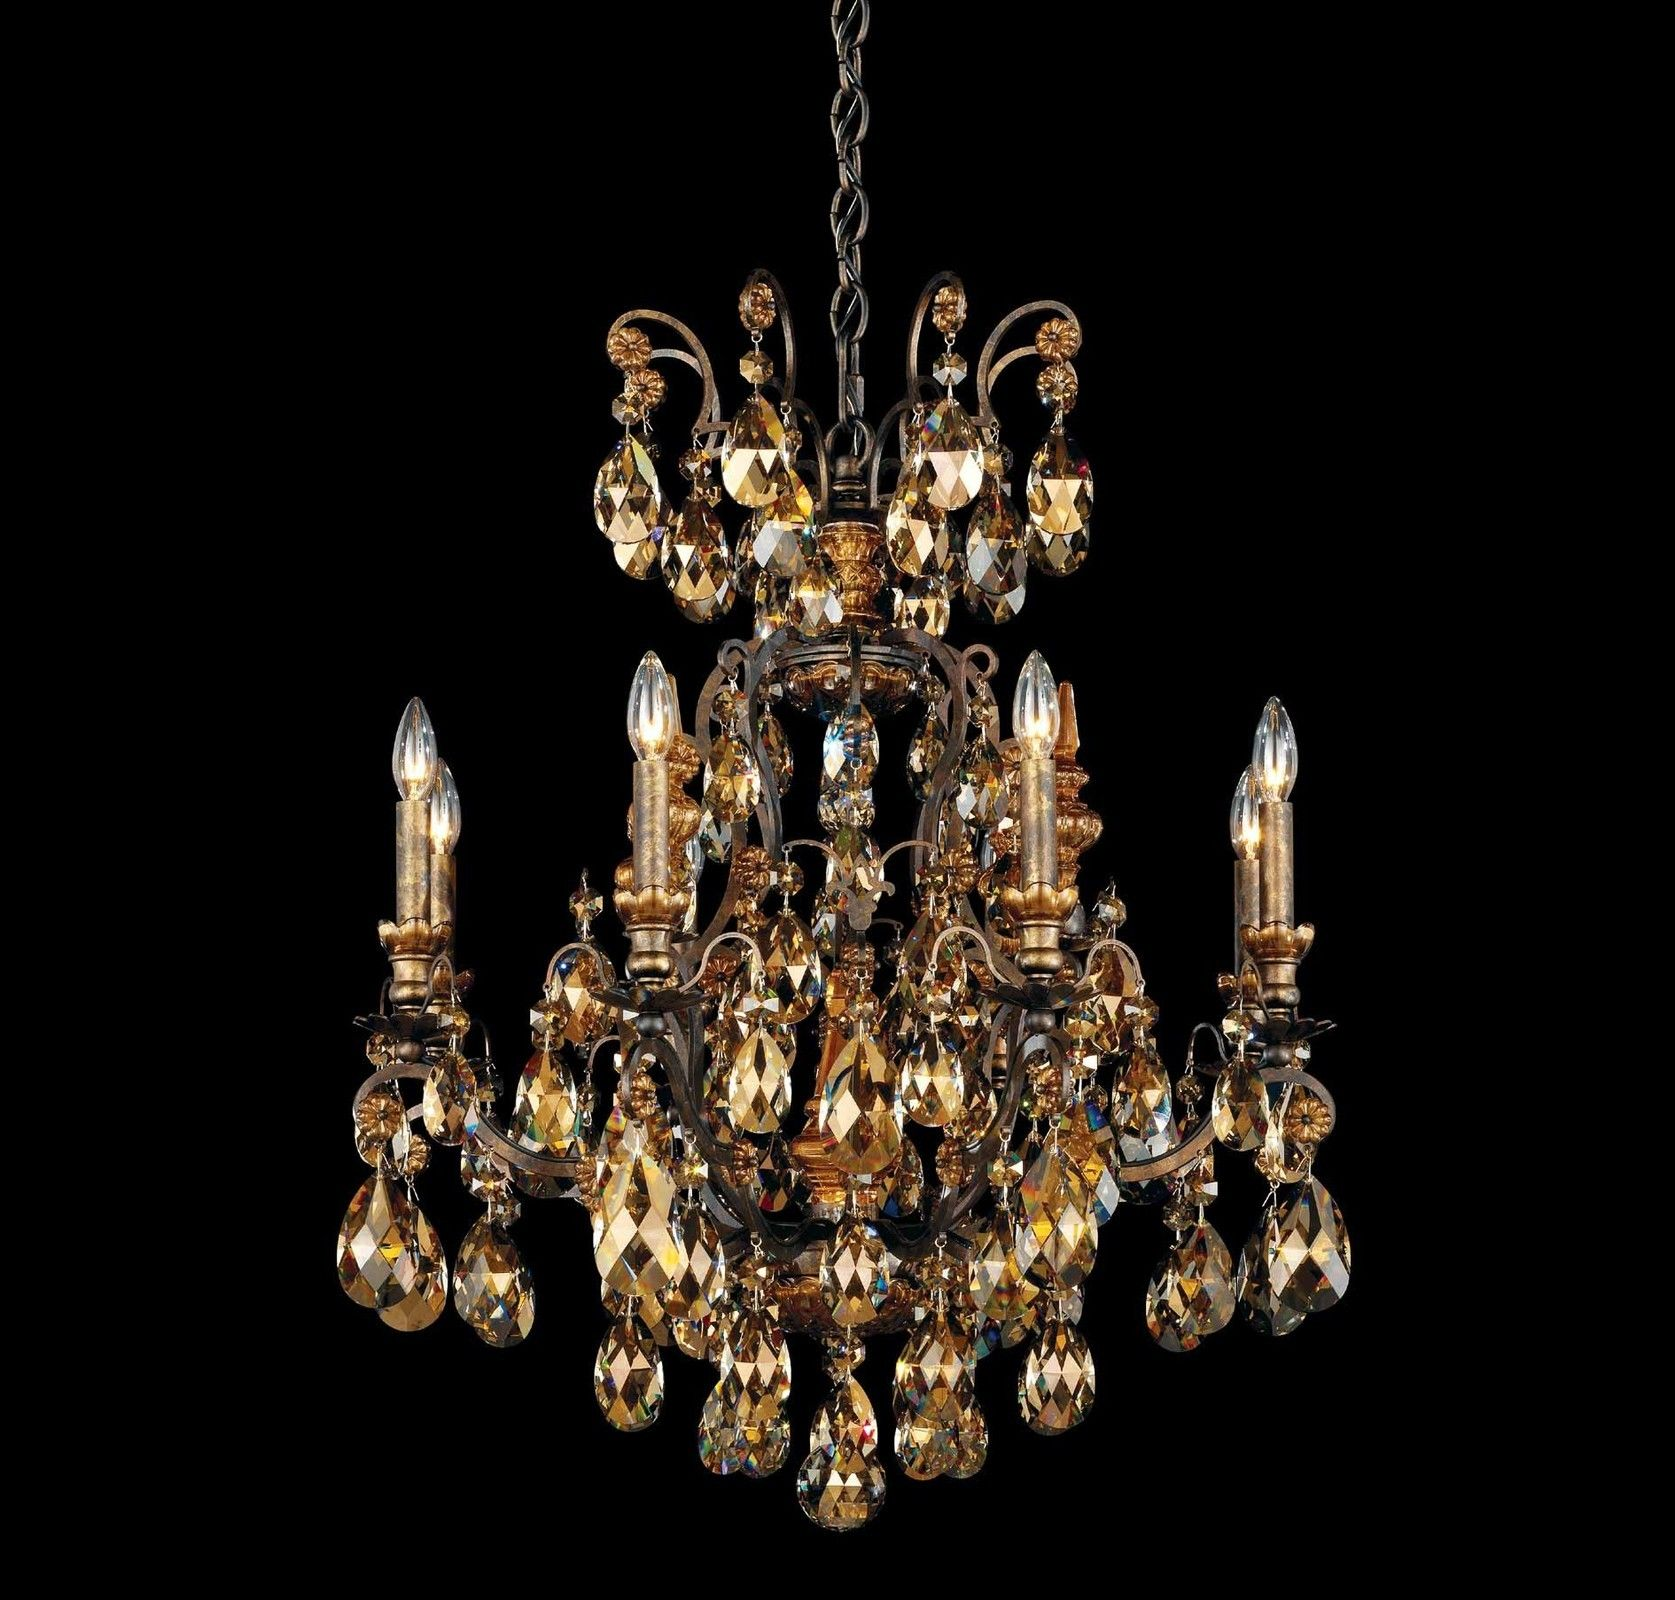 renaissance versailles 81 light chandelier schonbek chandeliers crystal antique glass gold - Schonbek Lighting